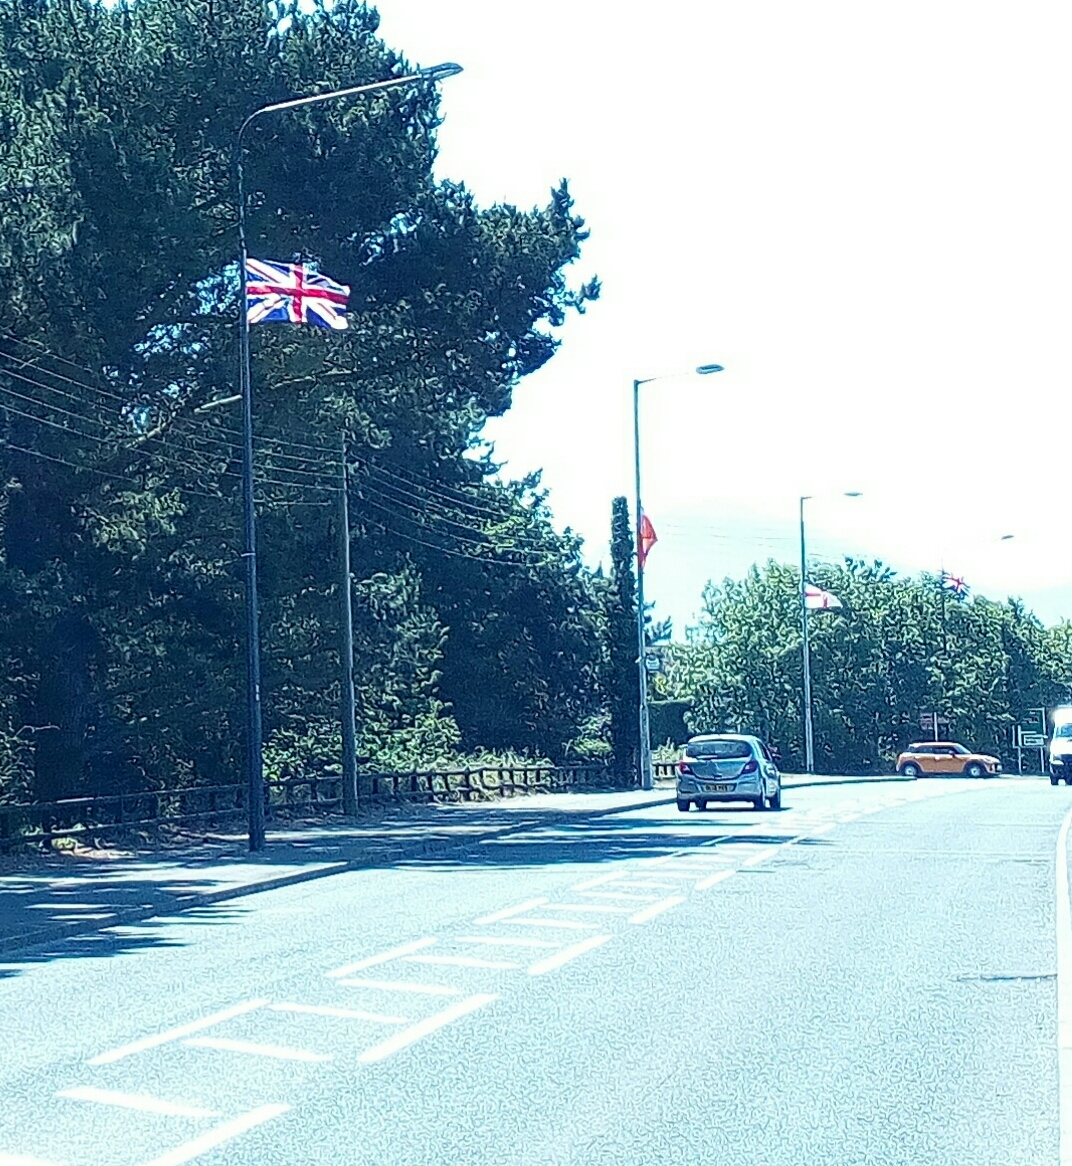 Dundrum flegs 1